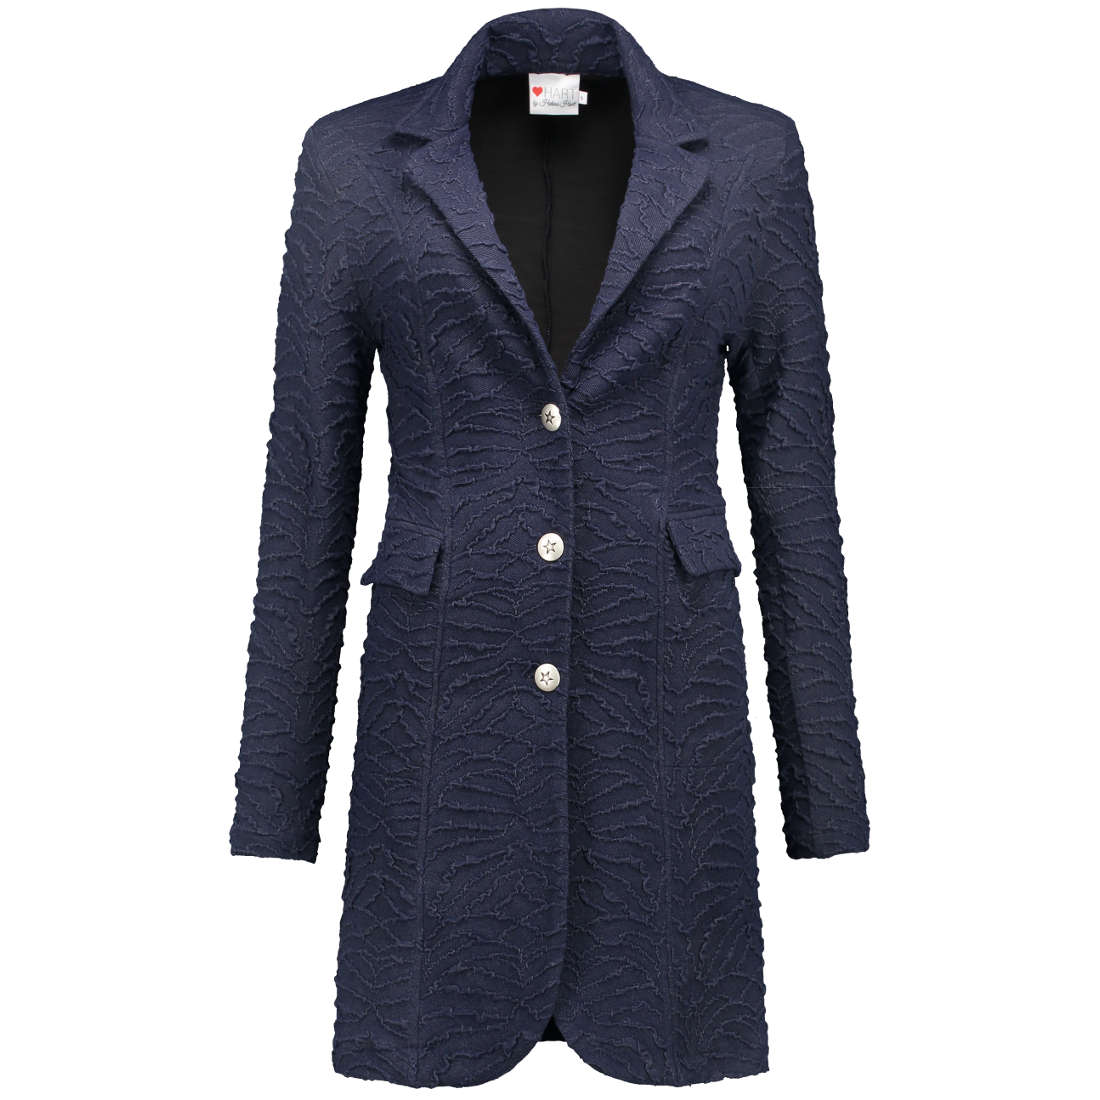 Helena Hart blazer 7039-tuxy-crunch in het Denim